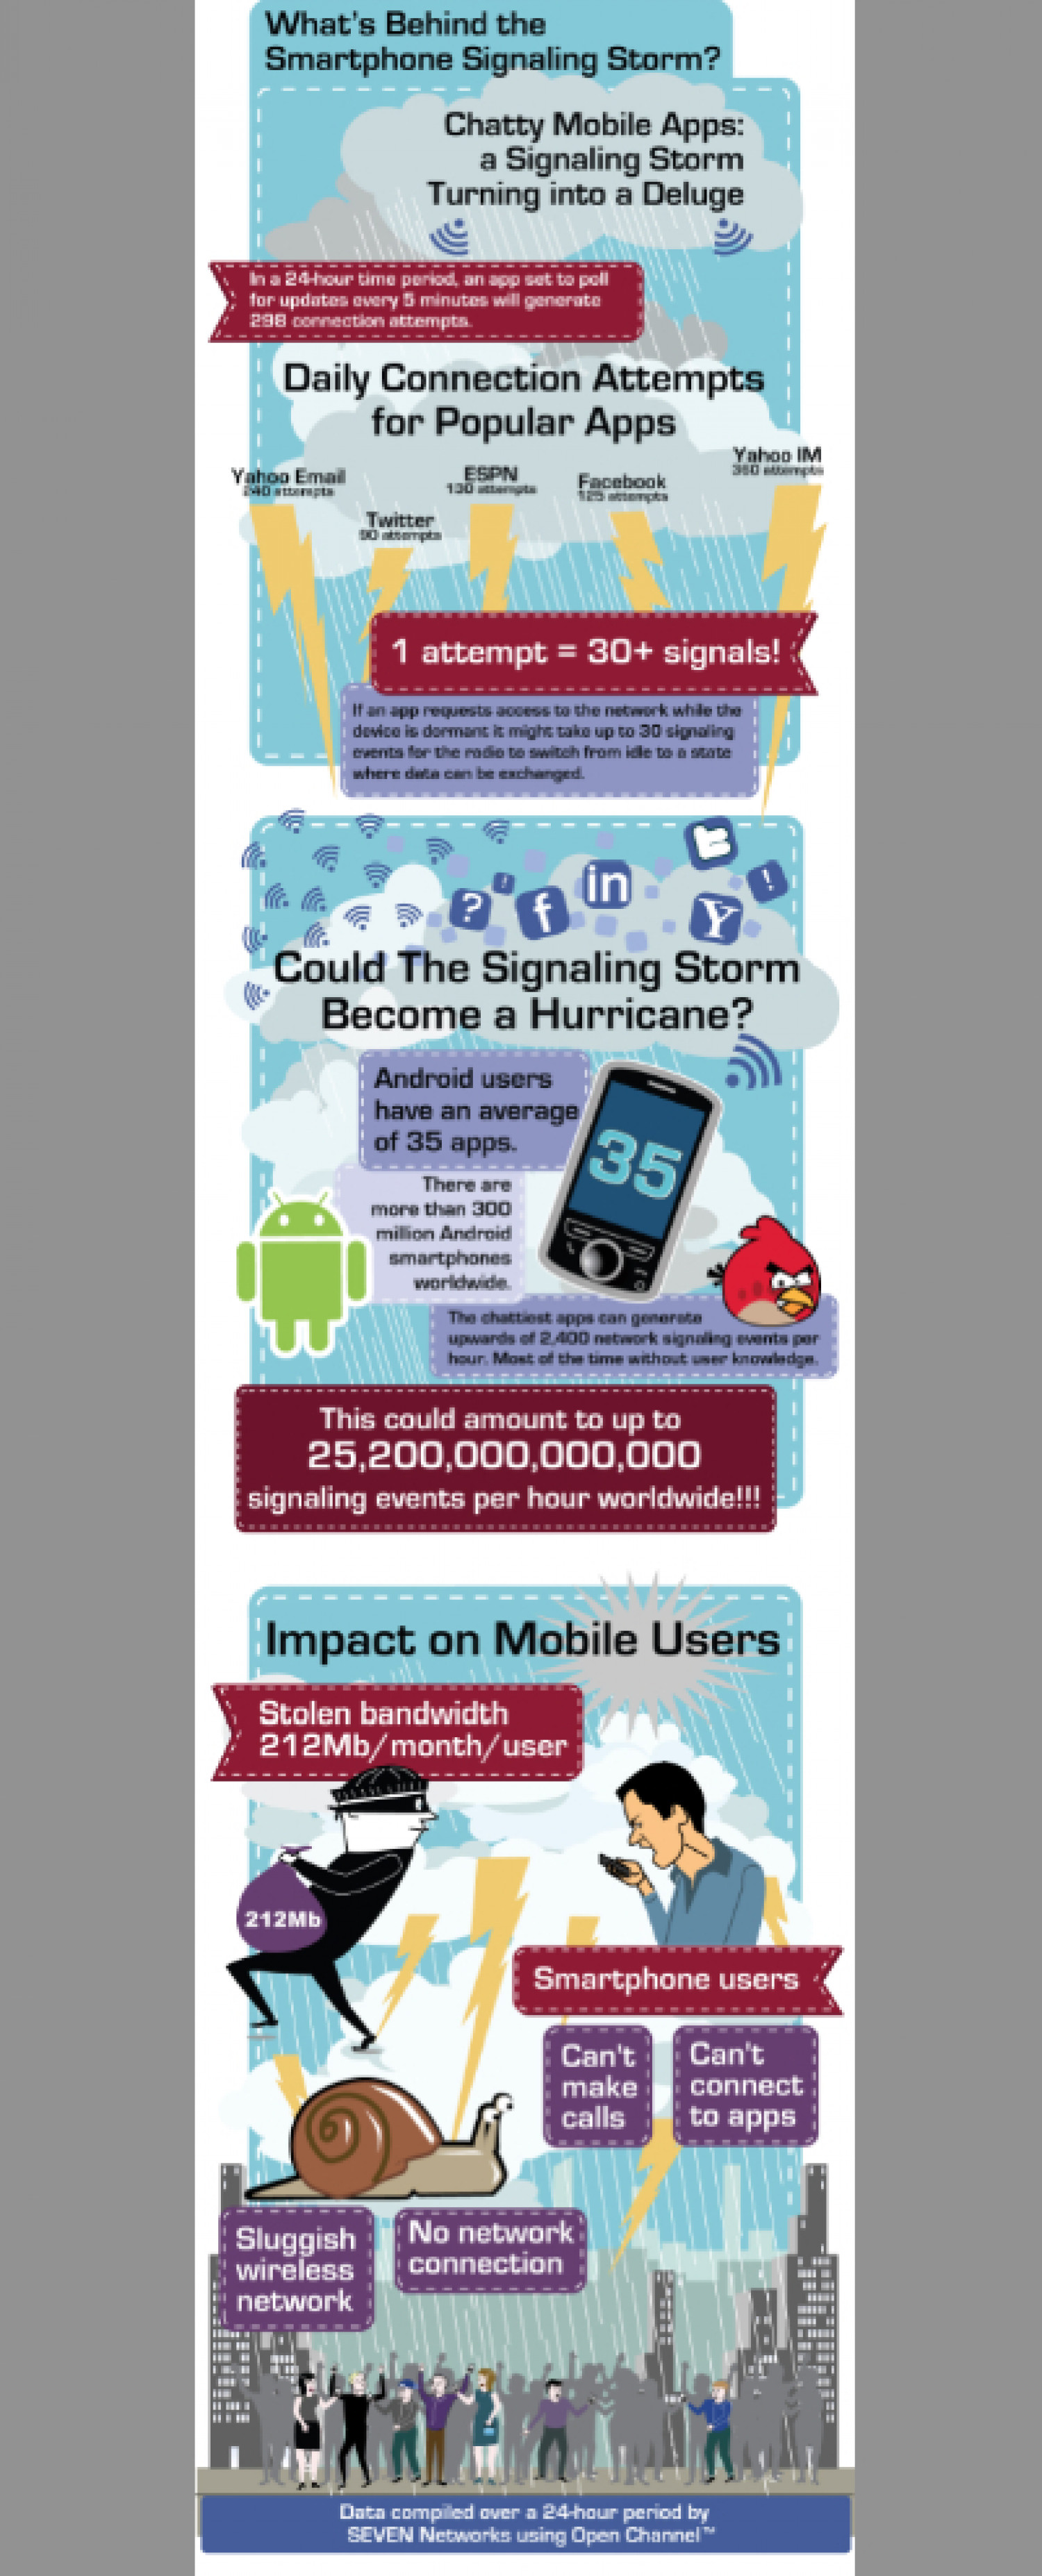 What's Behind the Smartphone Signaling Storm Infographic